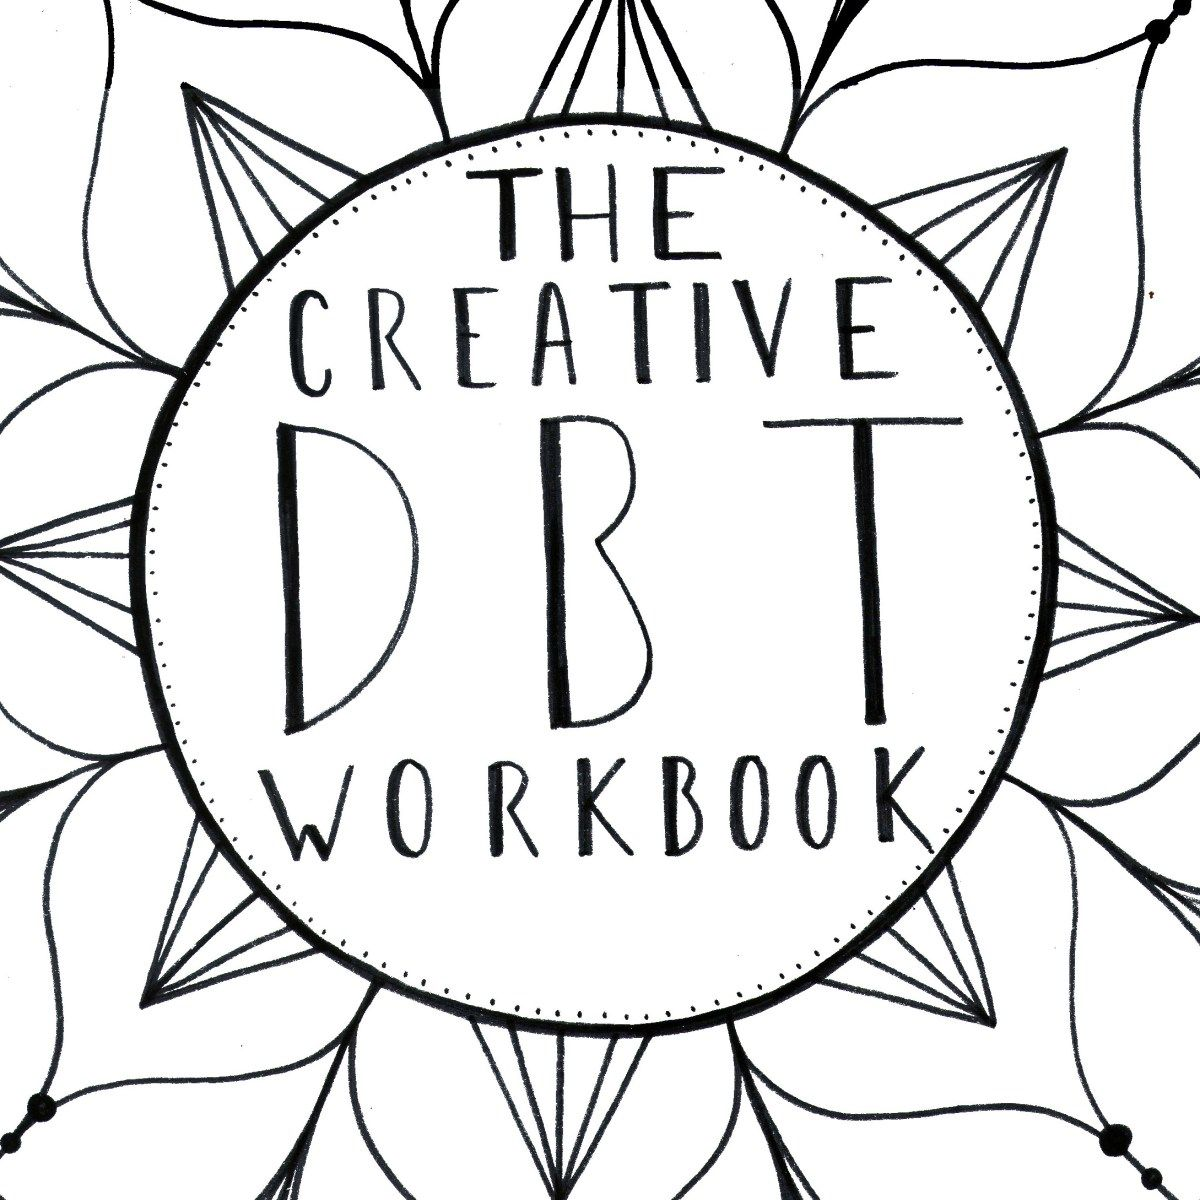 The Creative Dbt Workbook